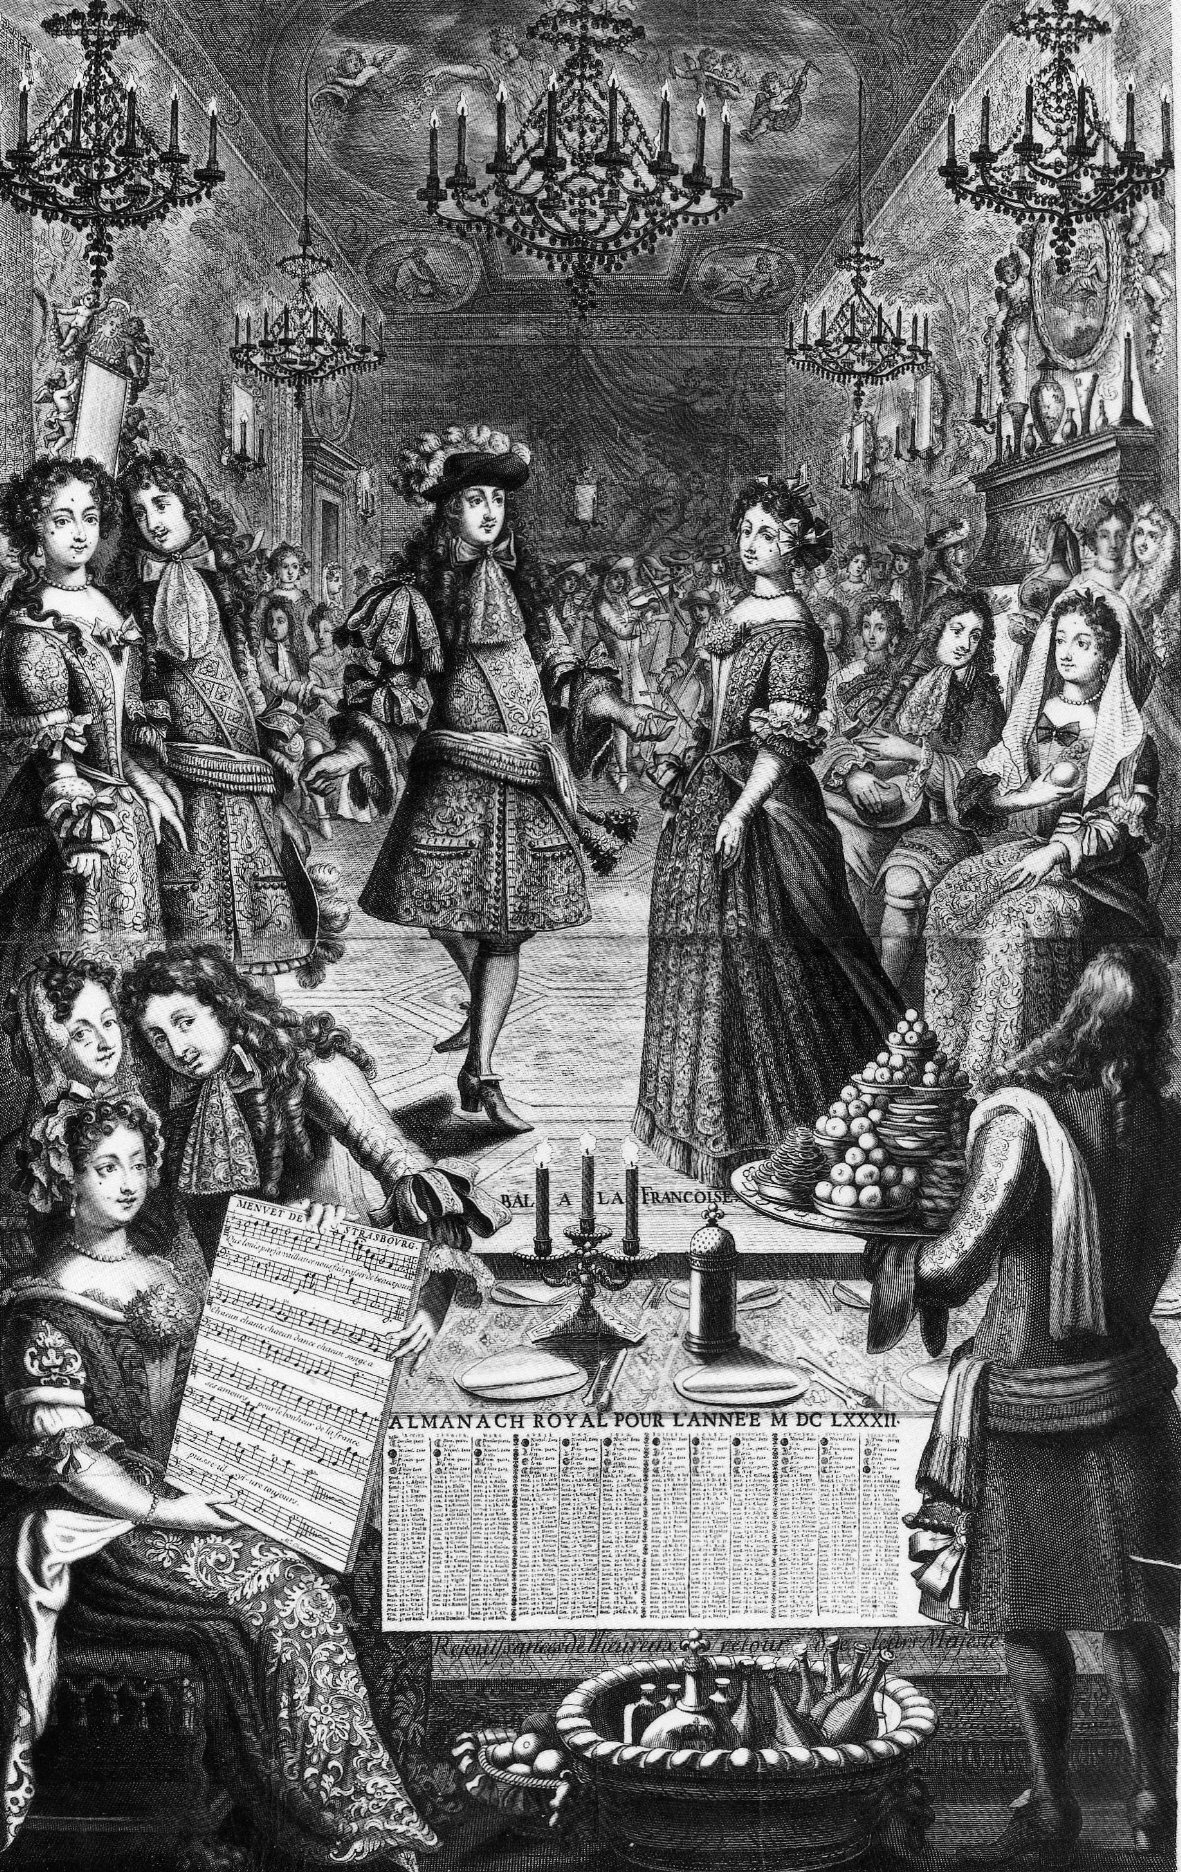 File:Engraving of a 1682 ball given by Louis XIV of France (Almanach royal